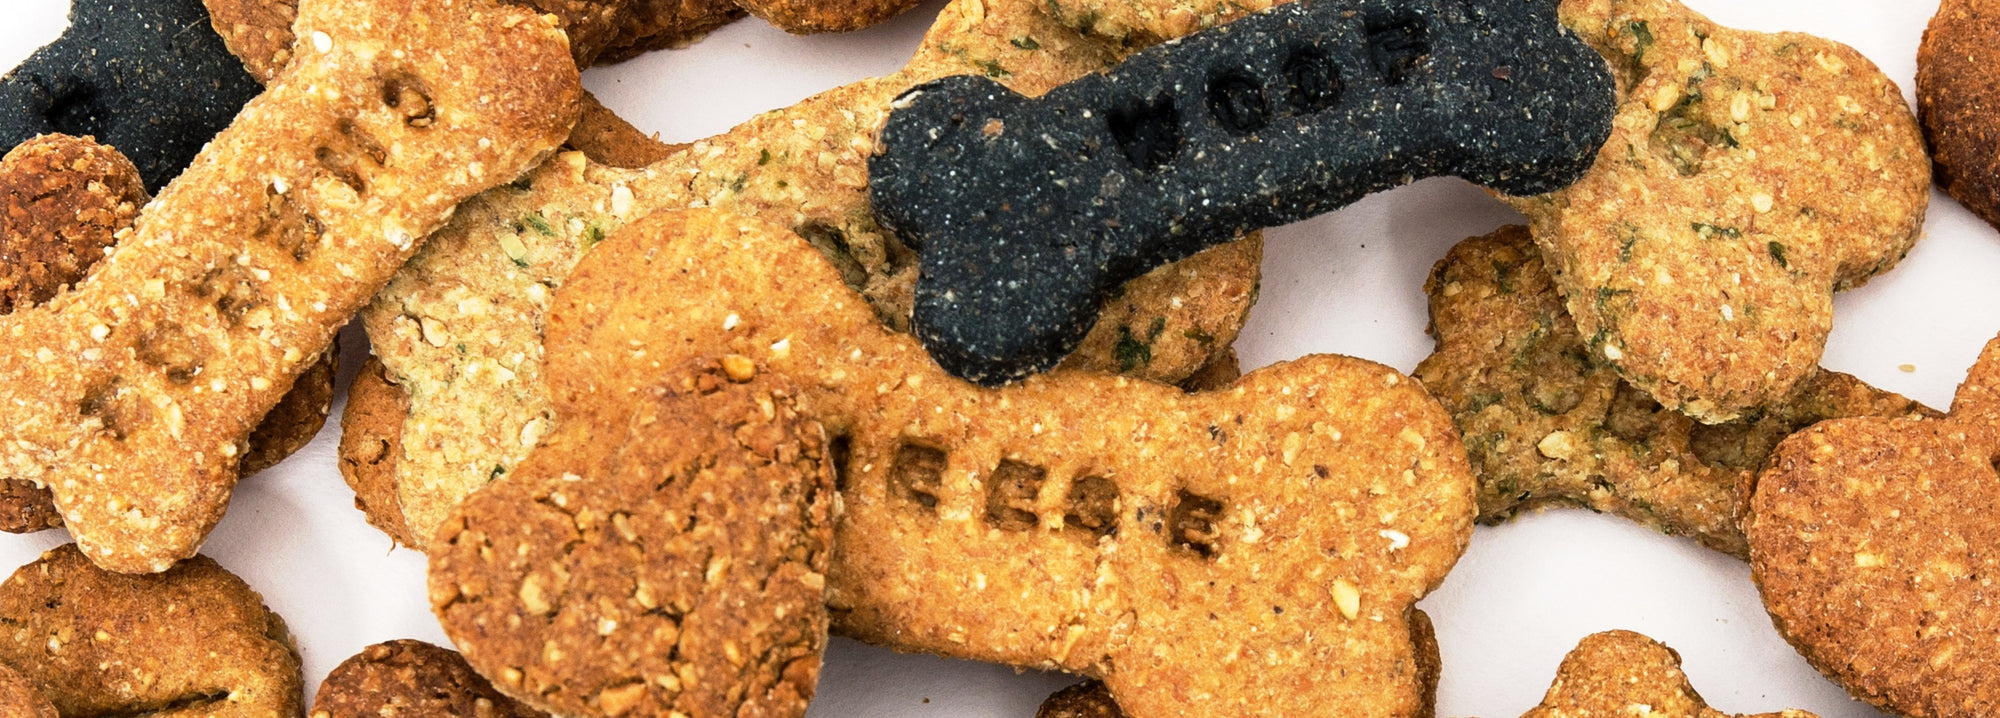 Handmade dog biscuits and treats